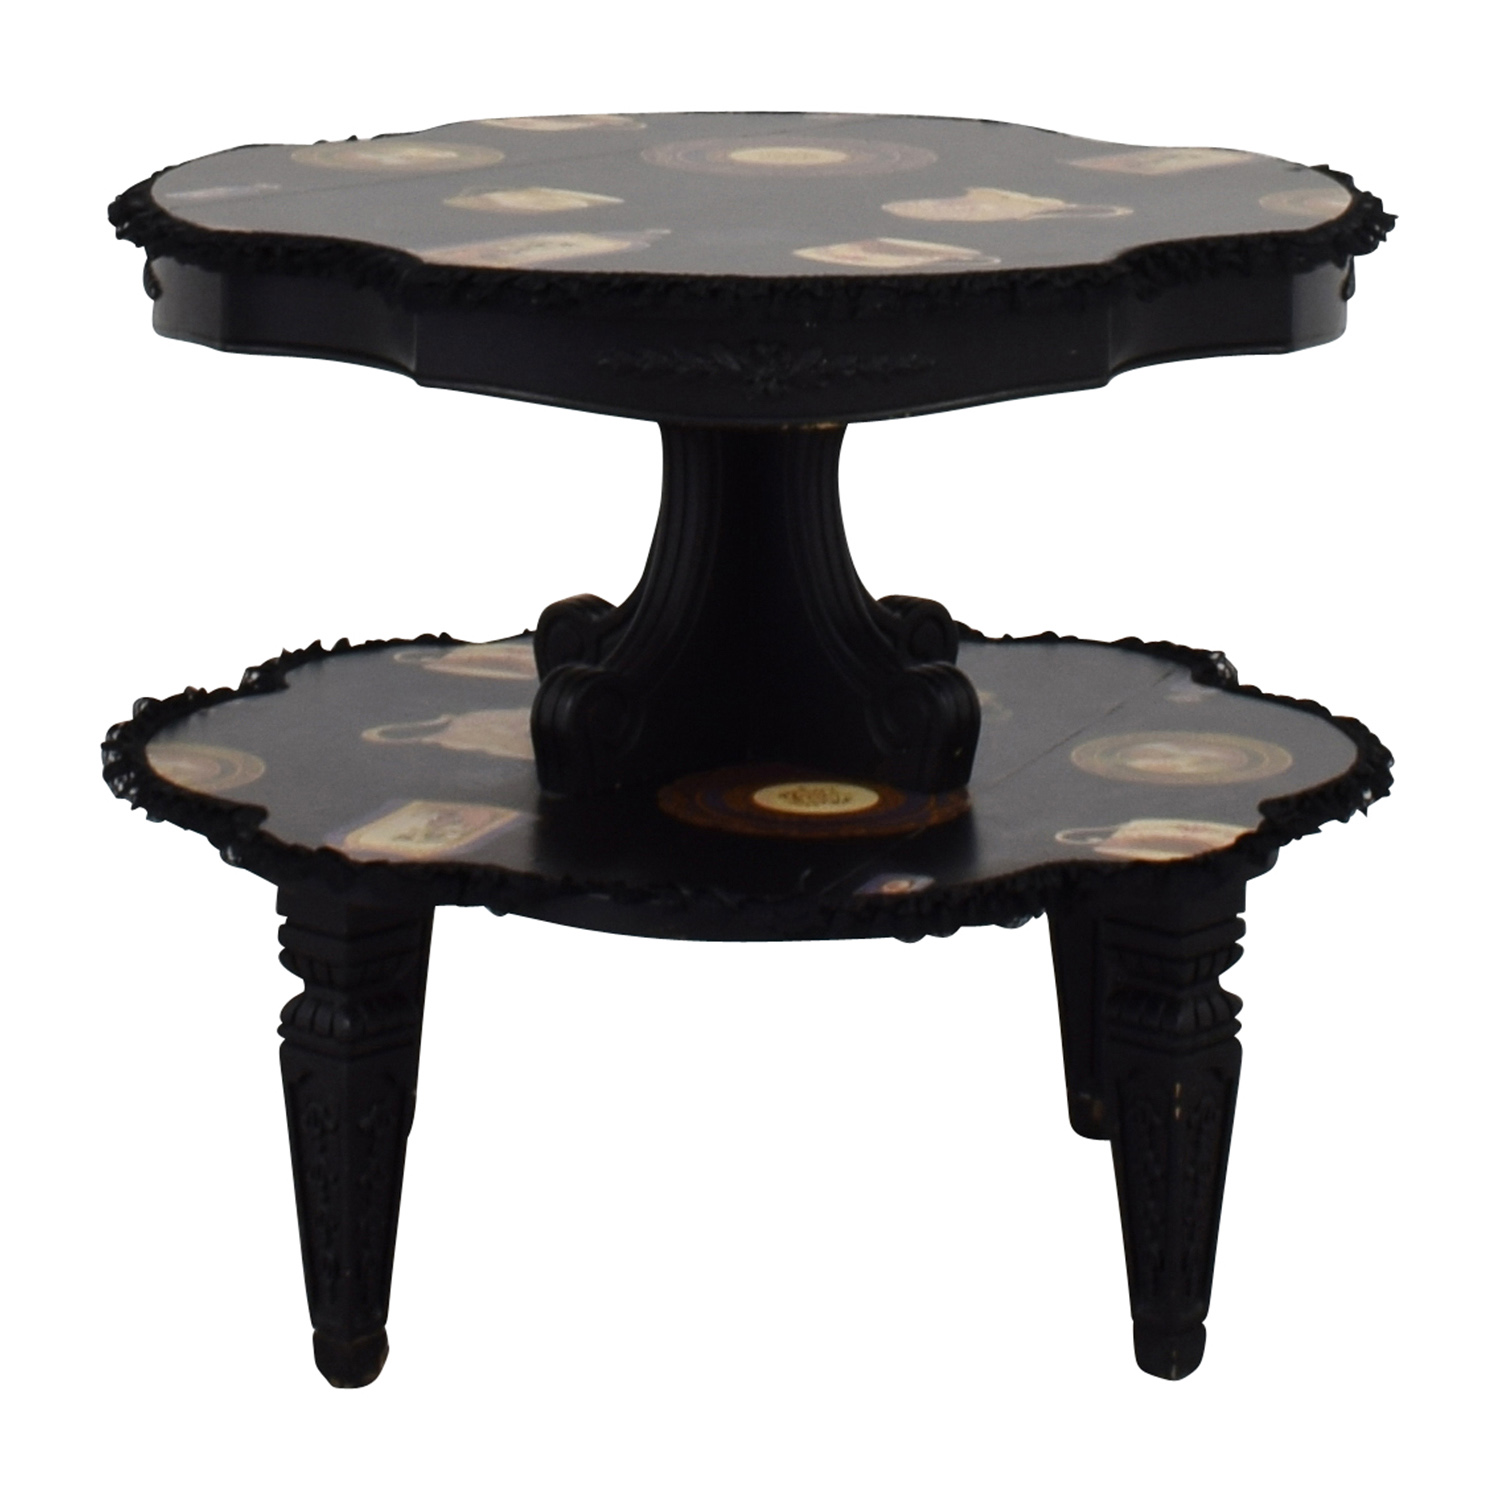 Alessi Alessi Round Black Pictured Duel End Table with Lace dimensions